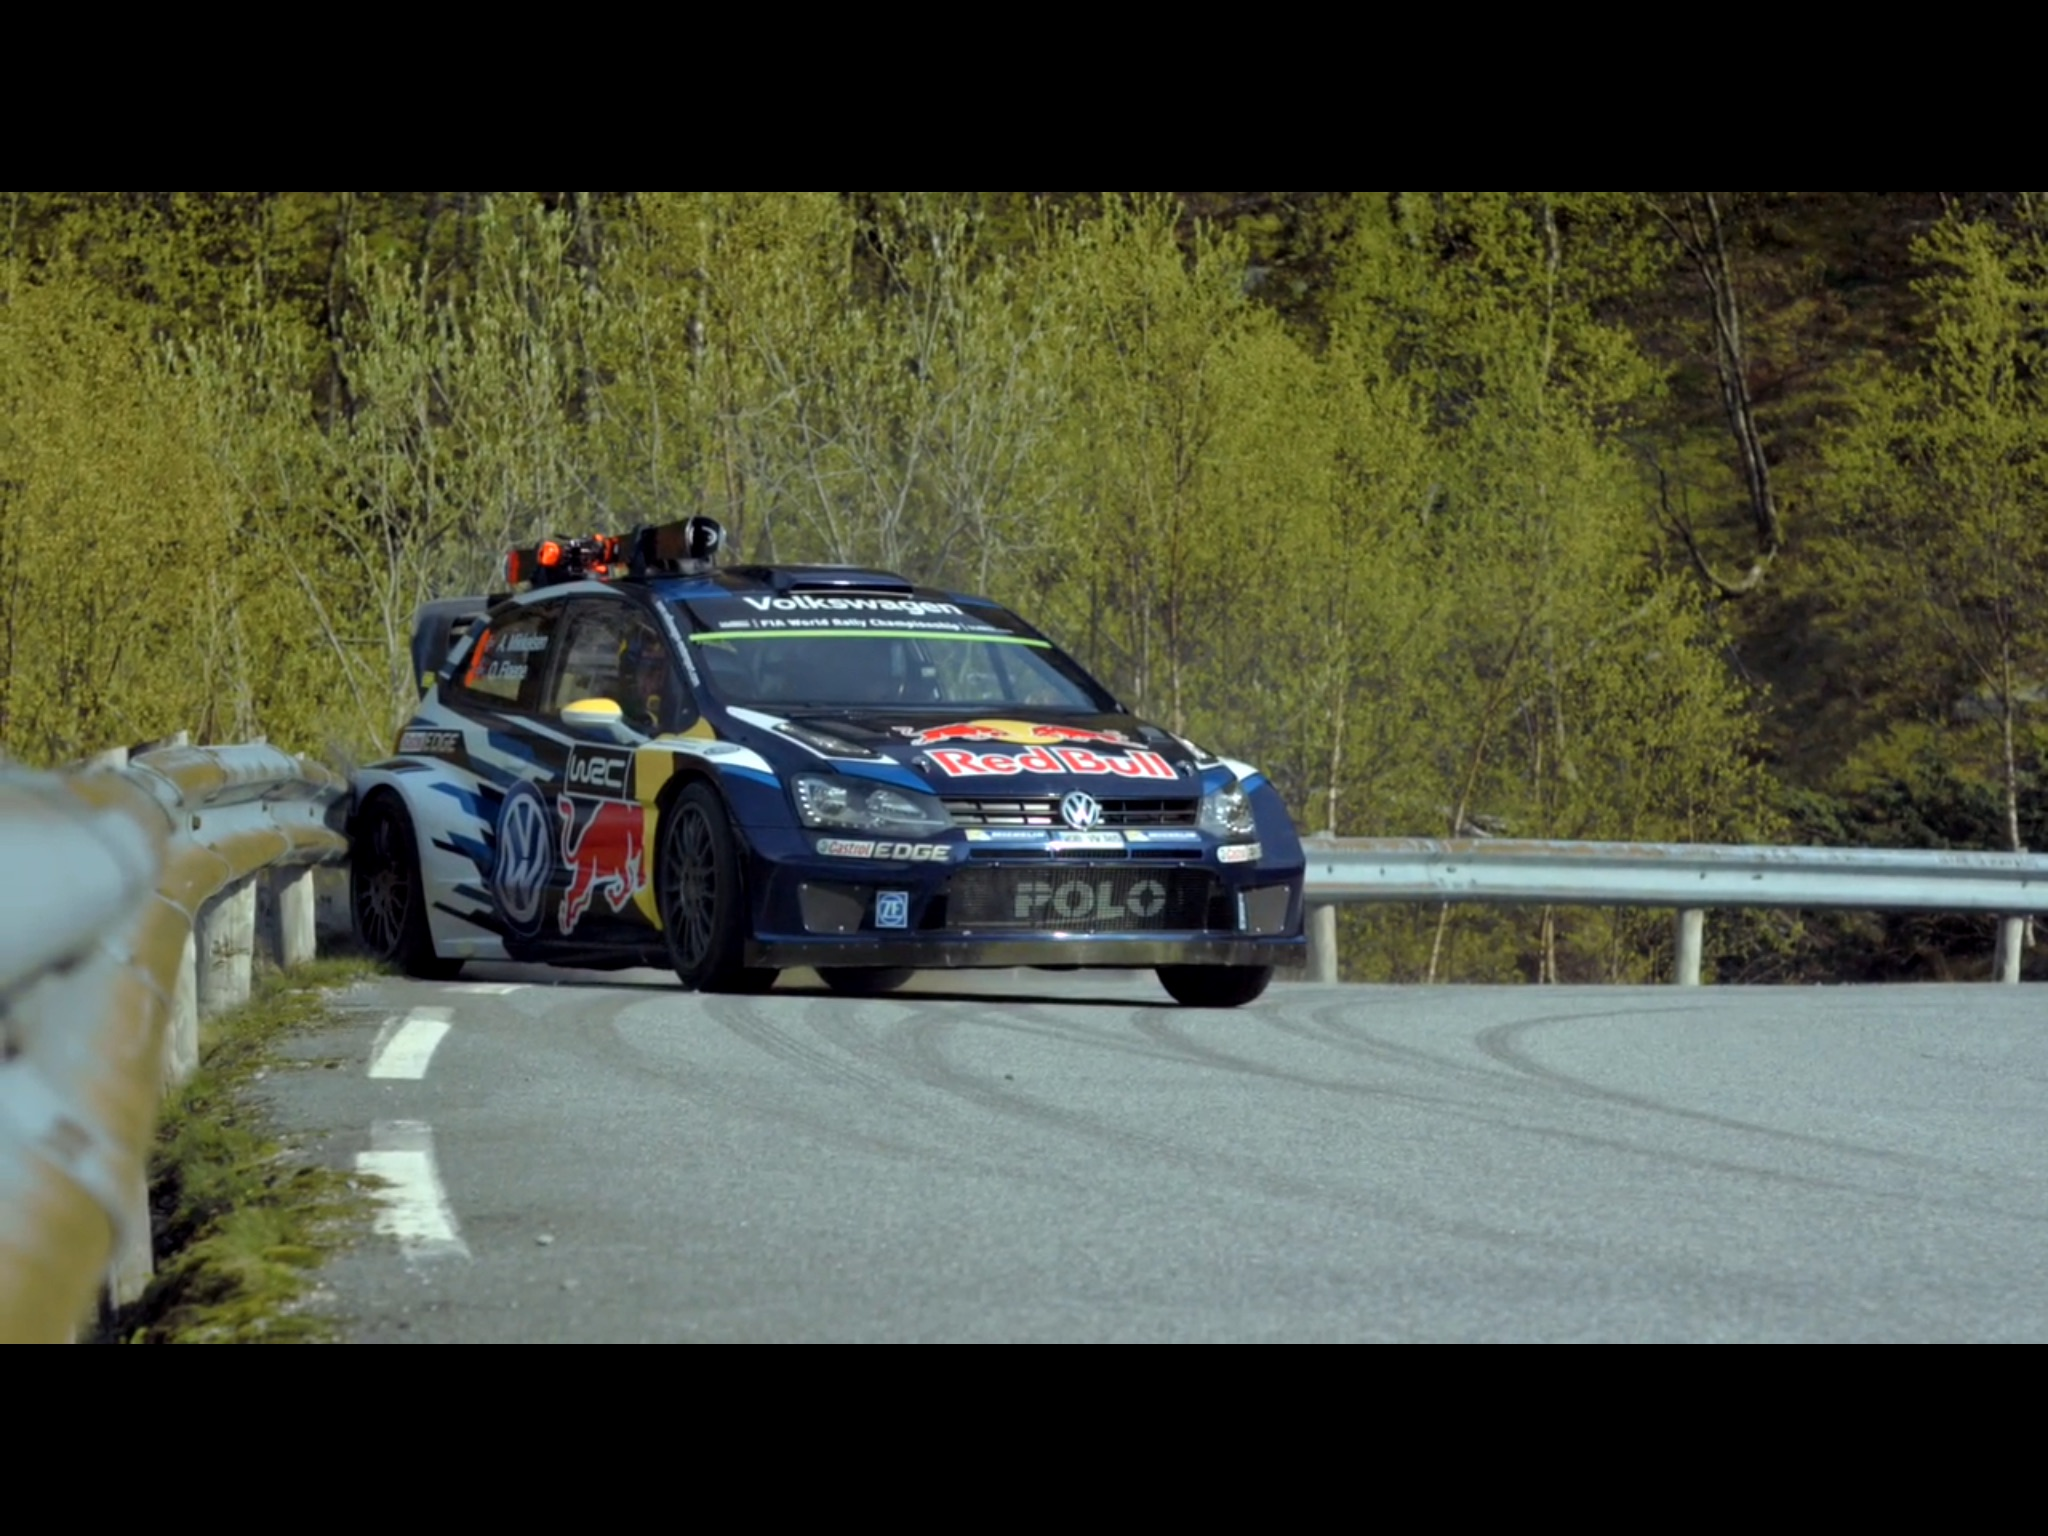 Click image to open the Red Bull website to view the video.